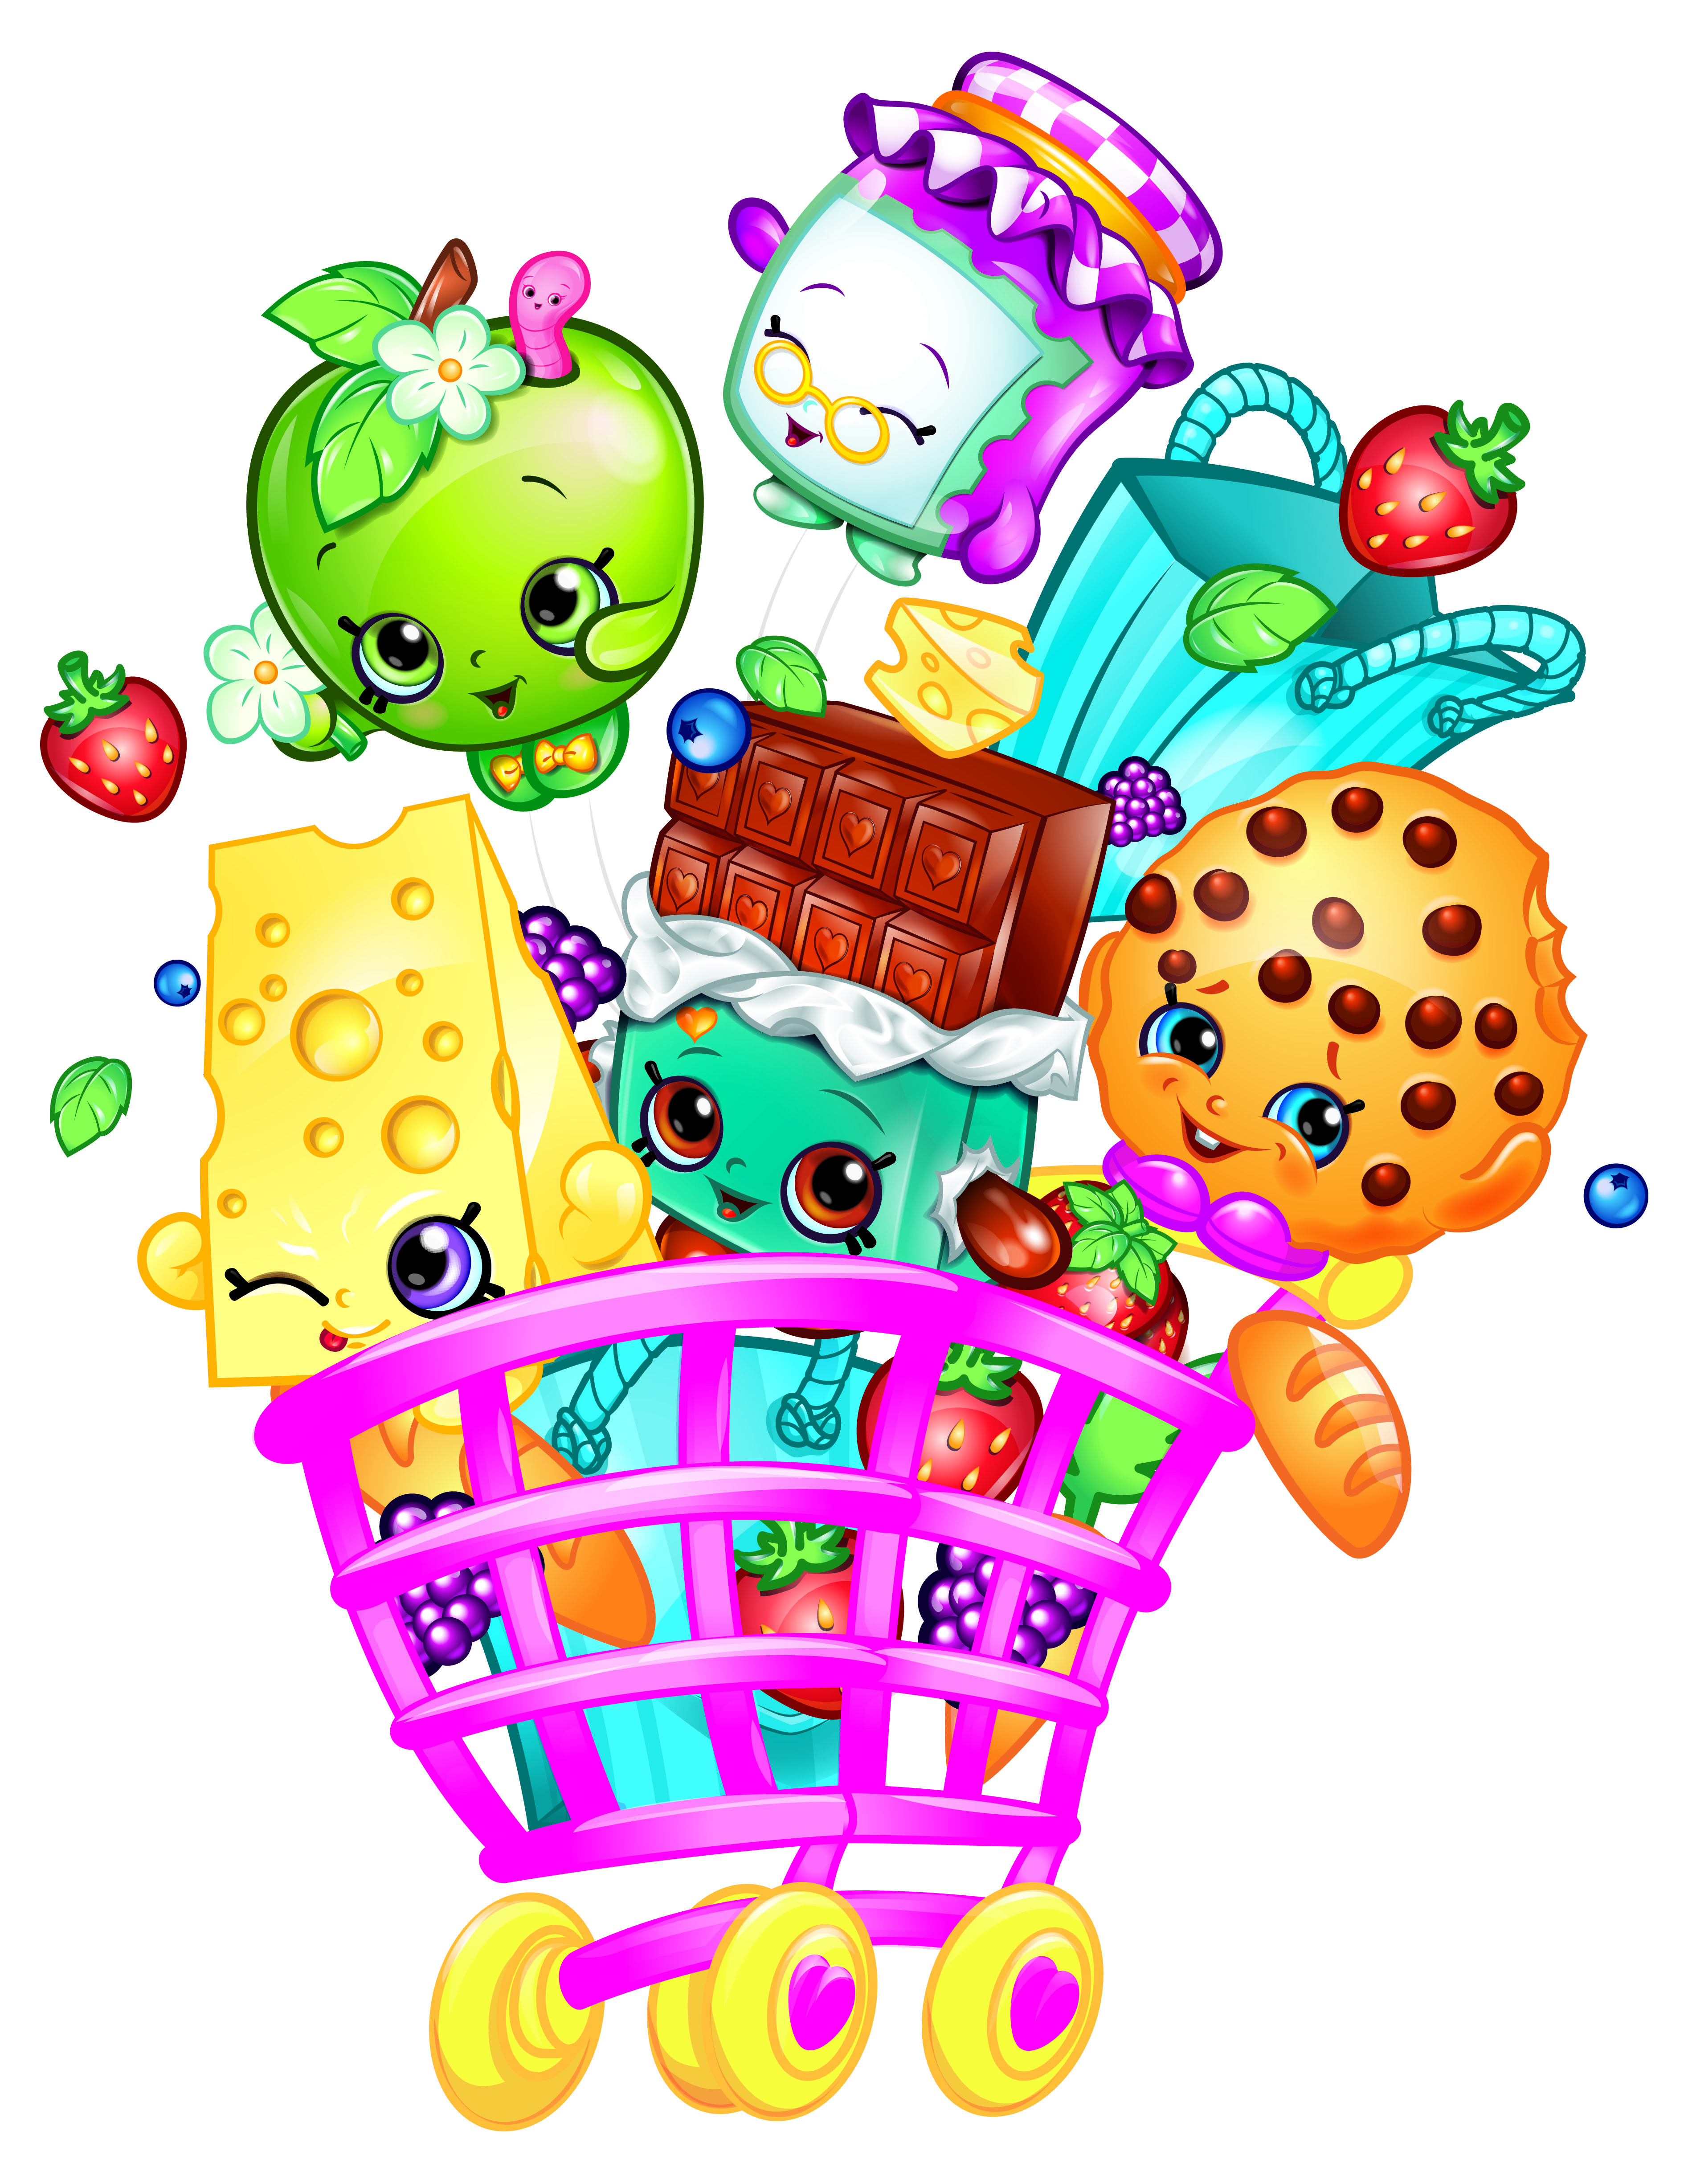 Free shopkins logo clipart png png free 1000+ images about Shopkins Party on Pinterest | Party printables ... png free